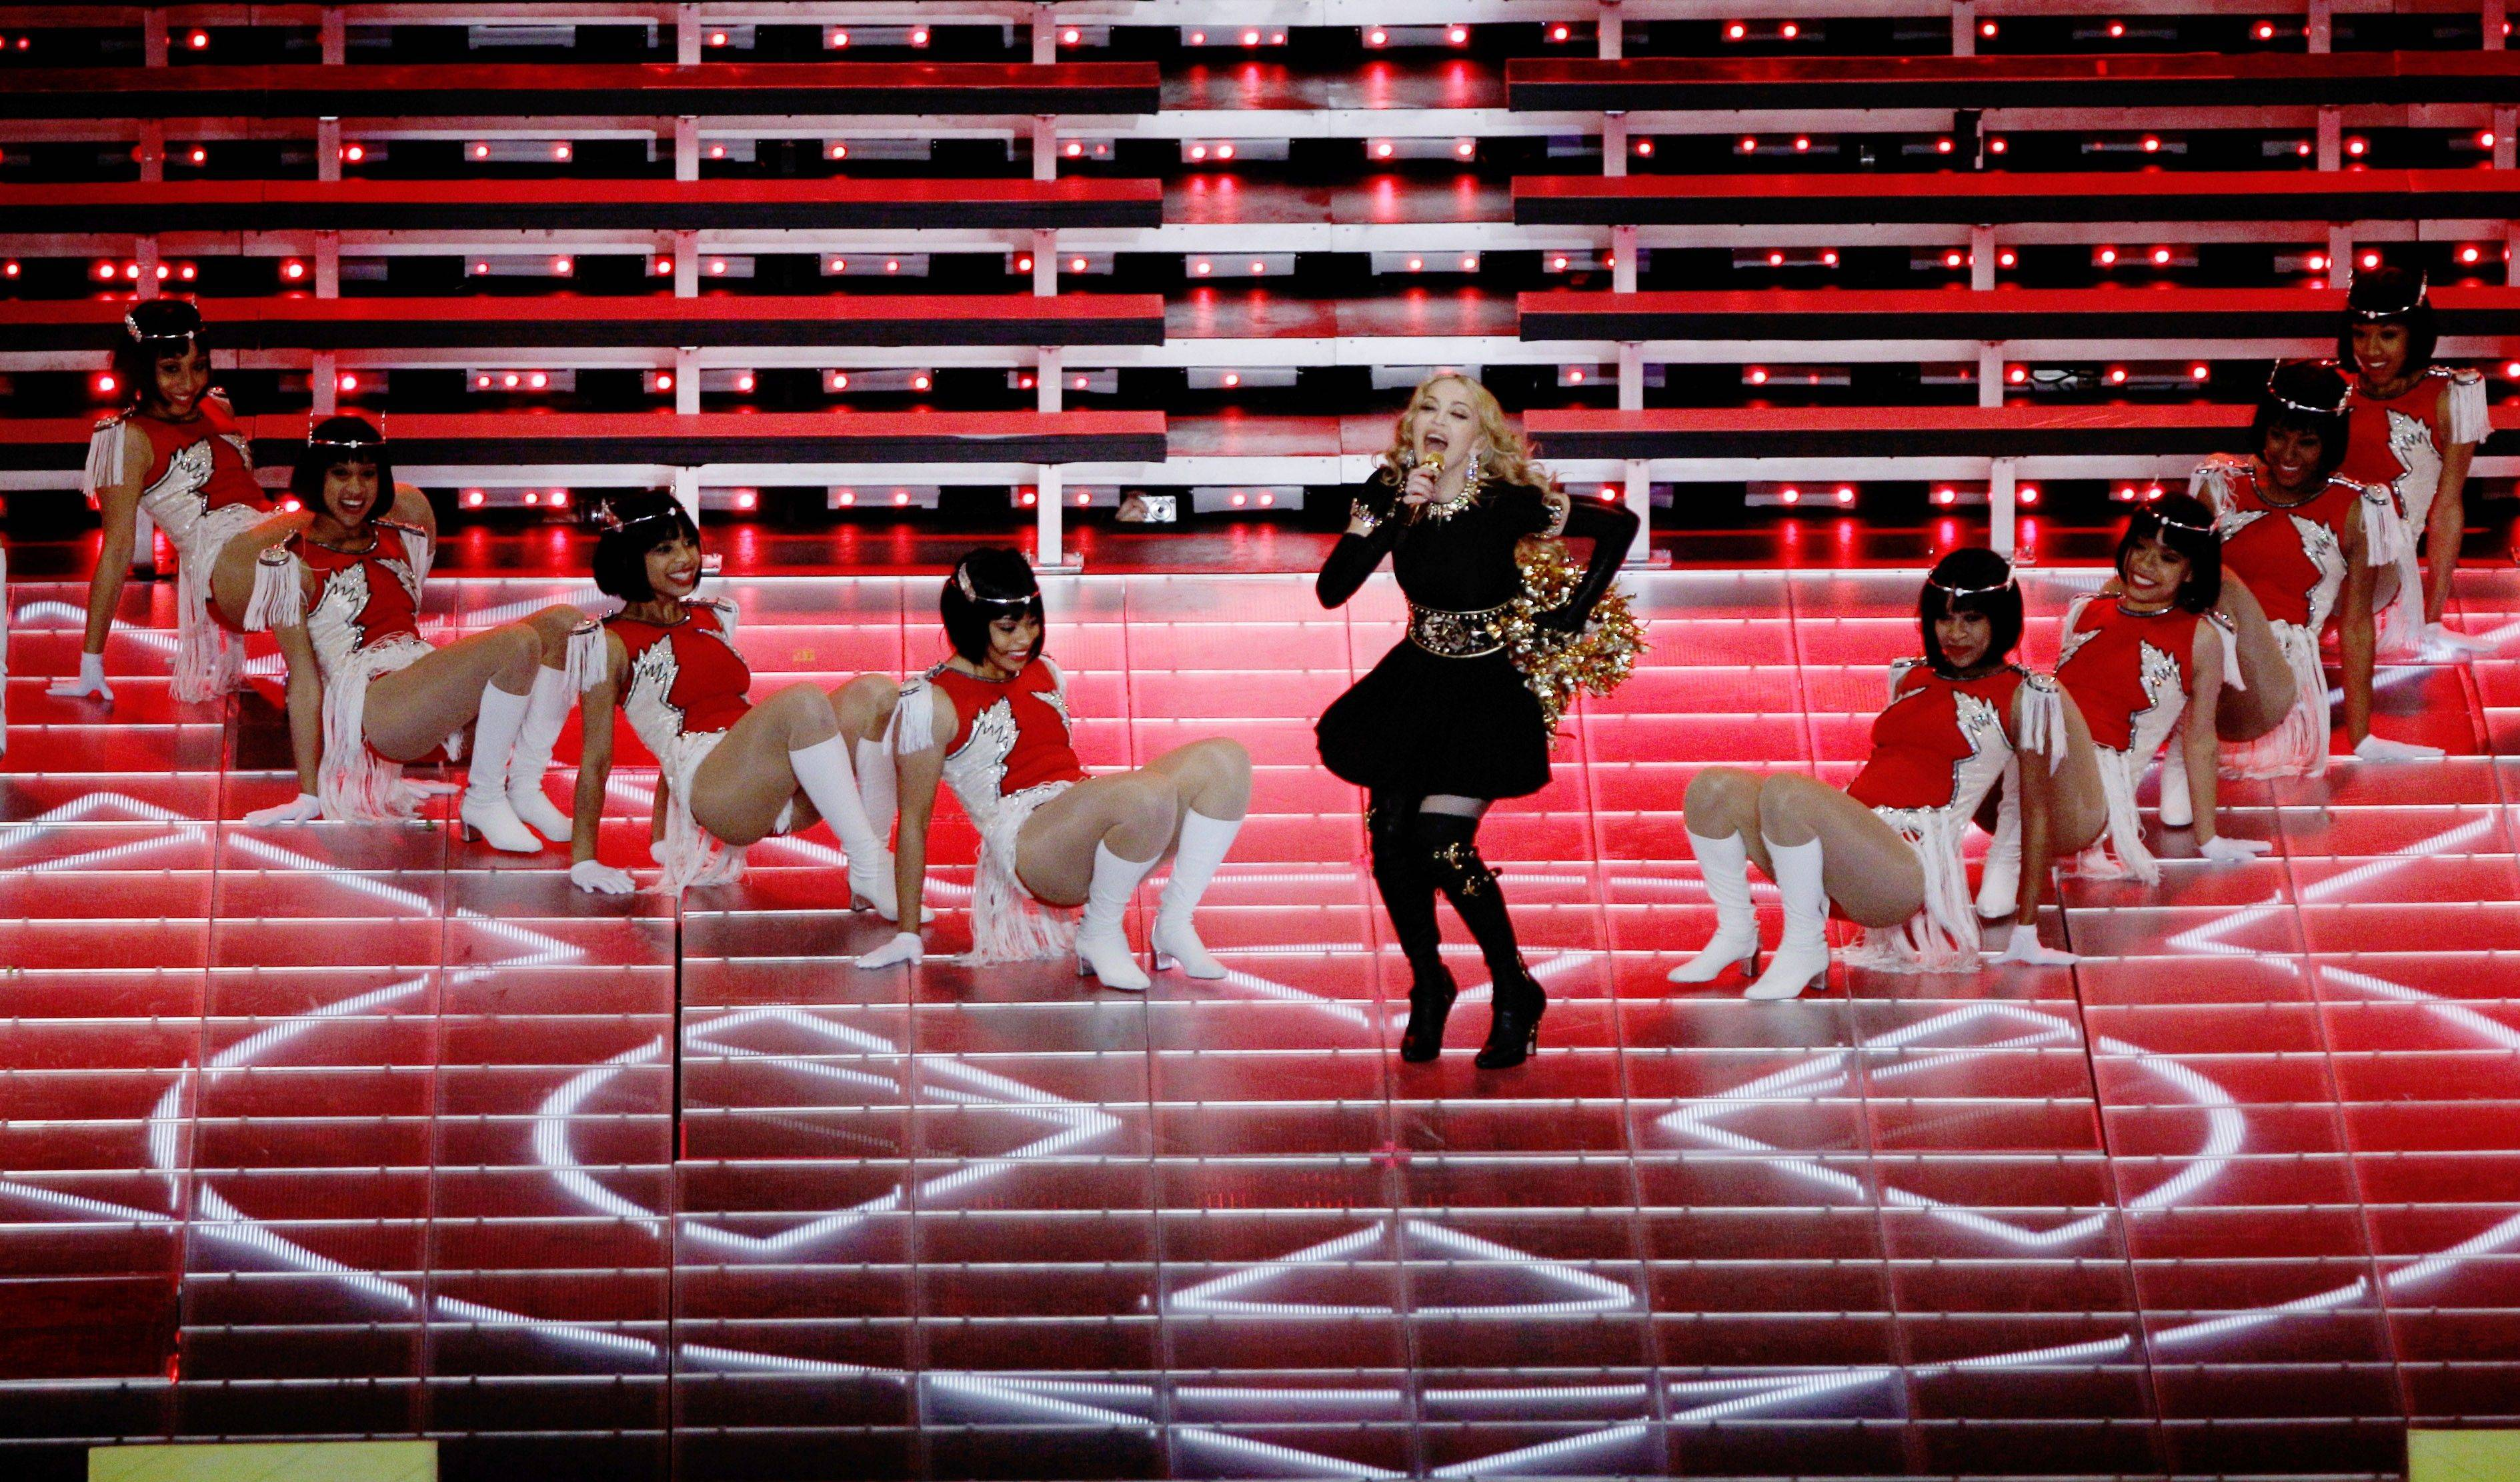 Madonna performs during halftime of Super Bowl XLVI.